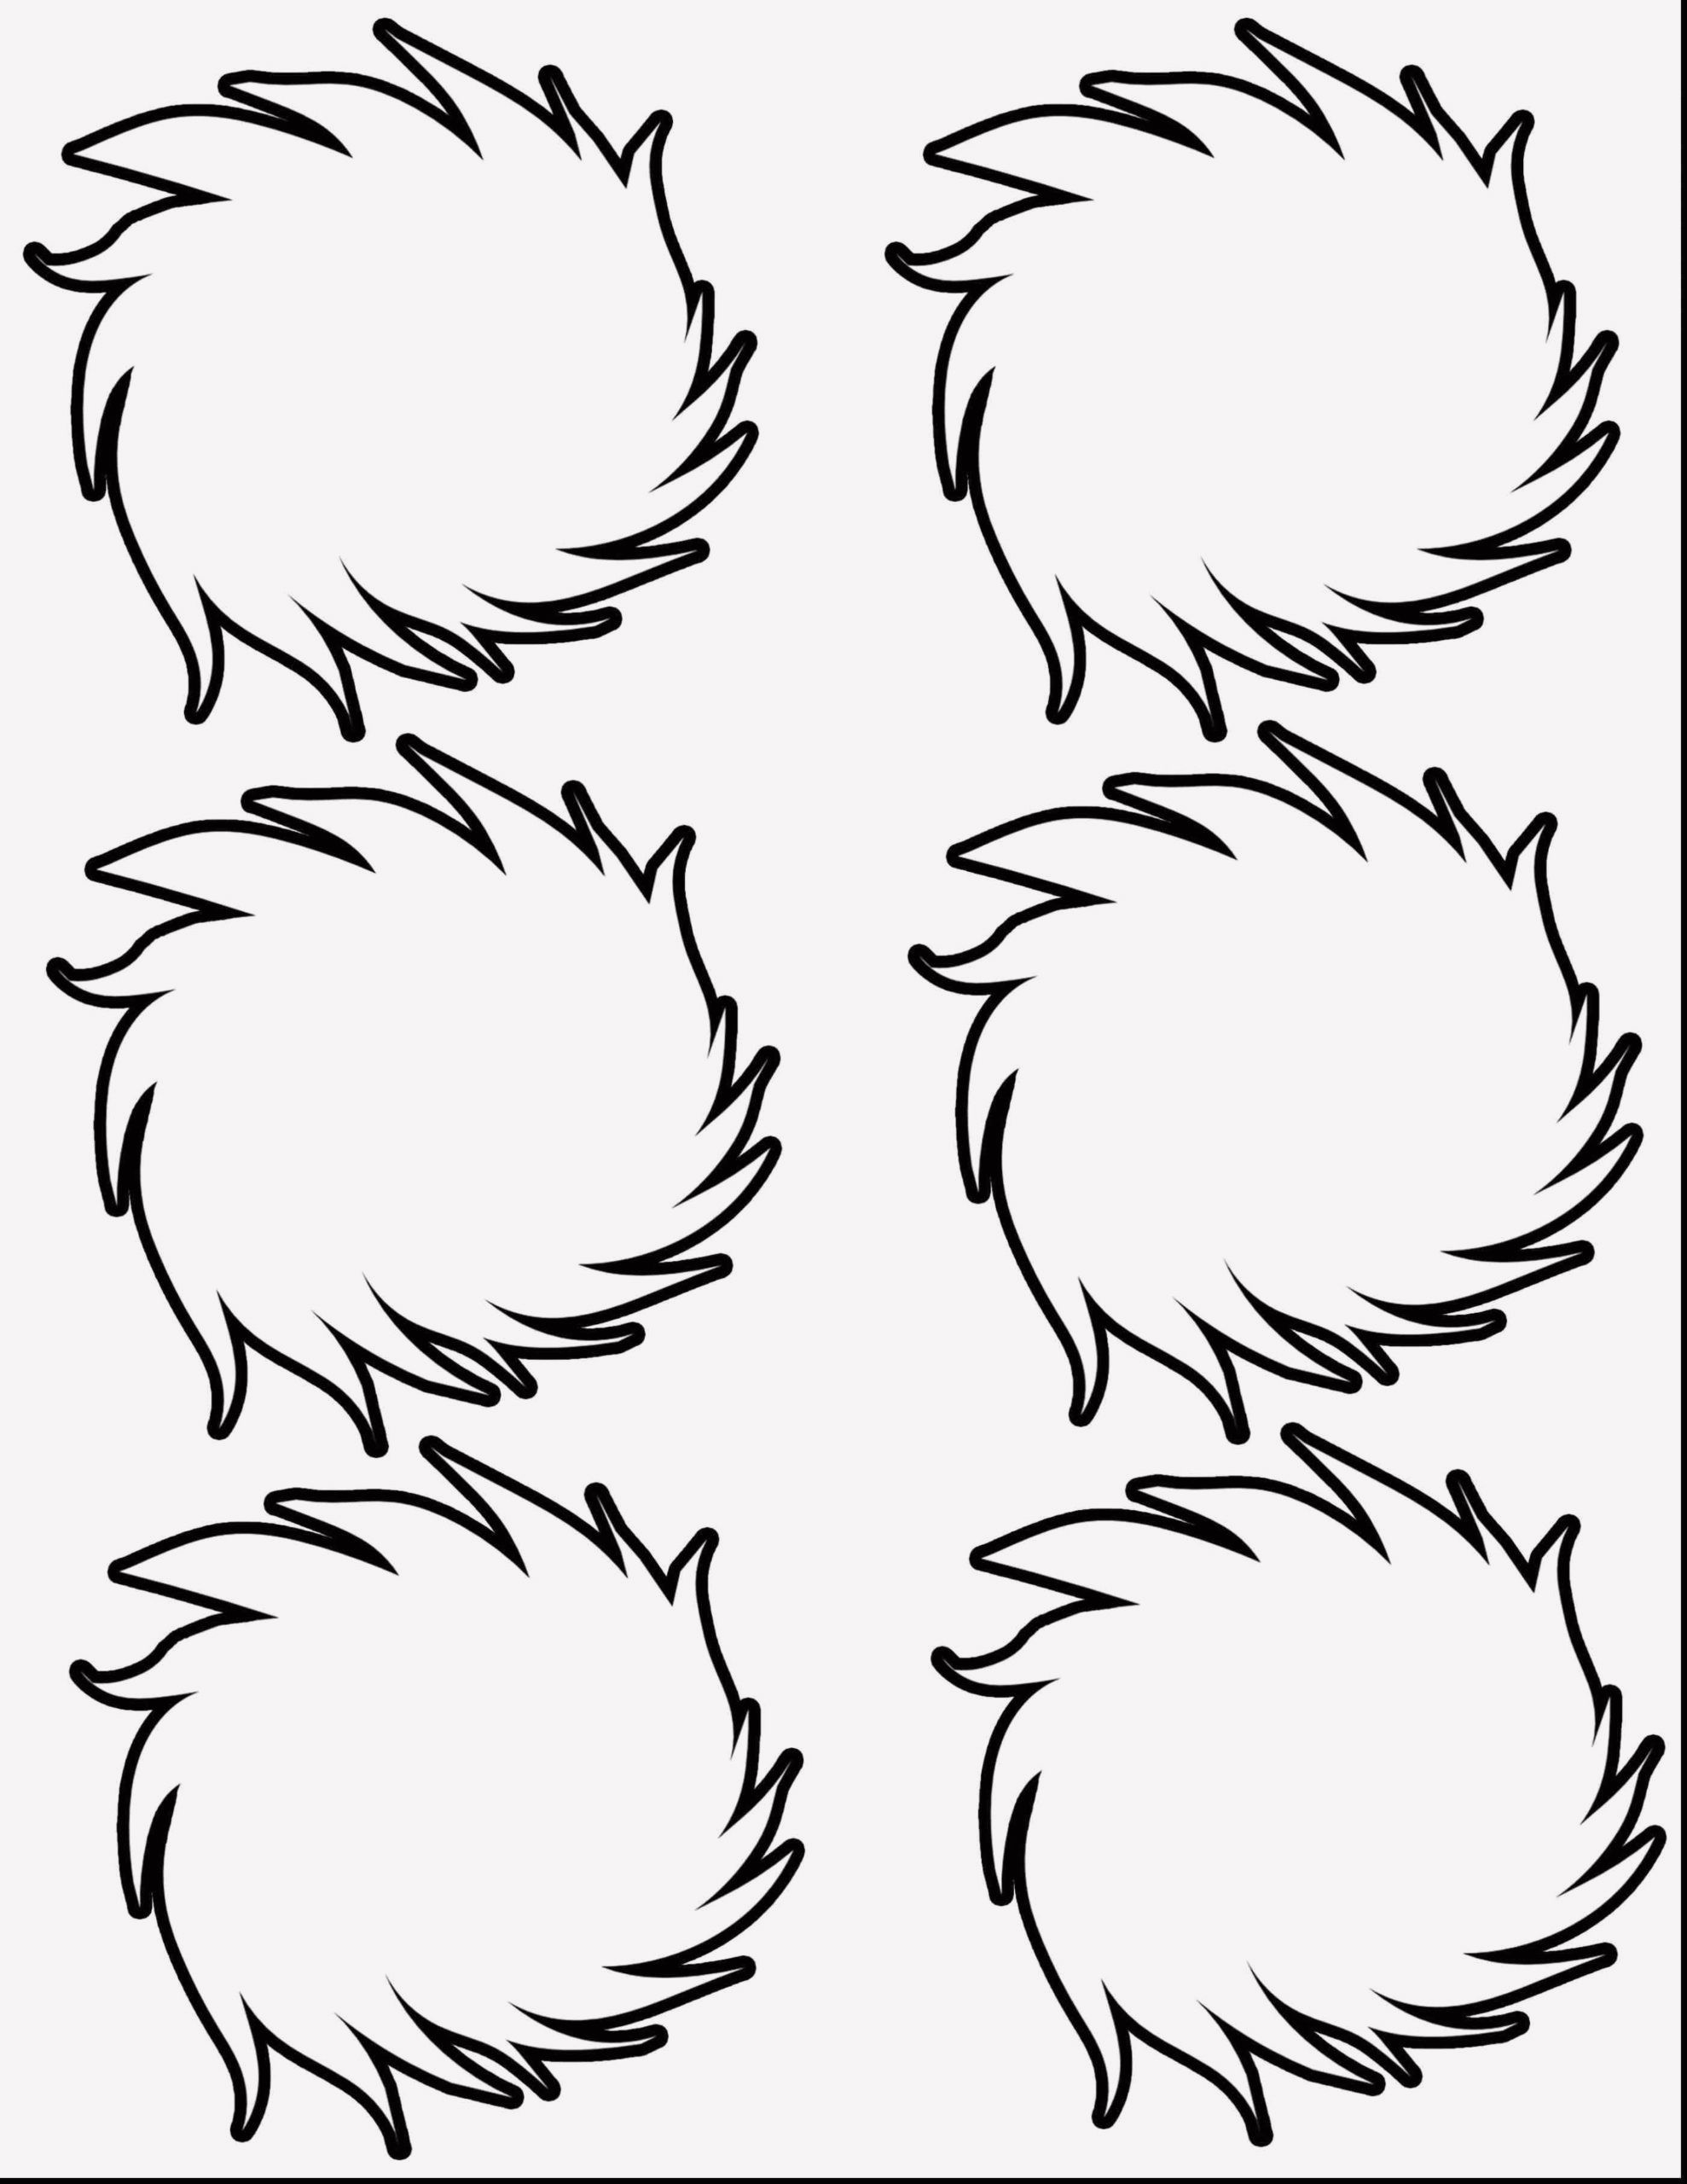 14 Dr Seuss Coloring Pages Thing 1 And Thing 2 Dr Seuss Coloring Pages Tree Coloring Page Coloring Pages